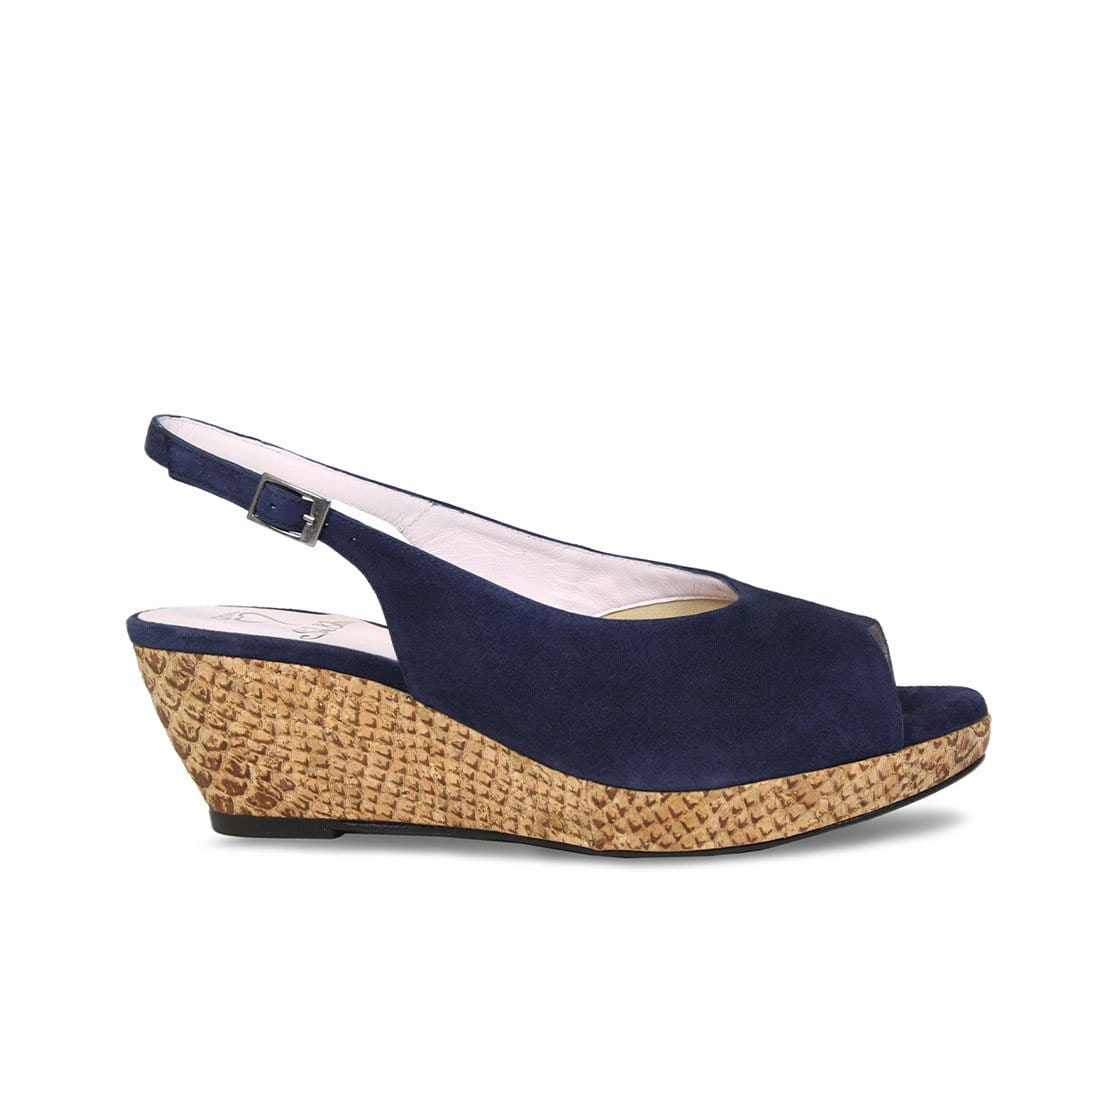 Navy Suede Low Wedge Sandals